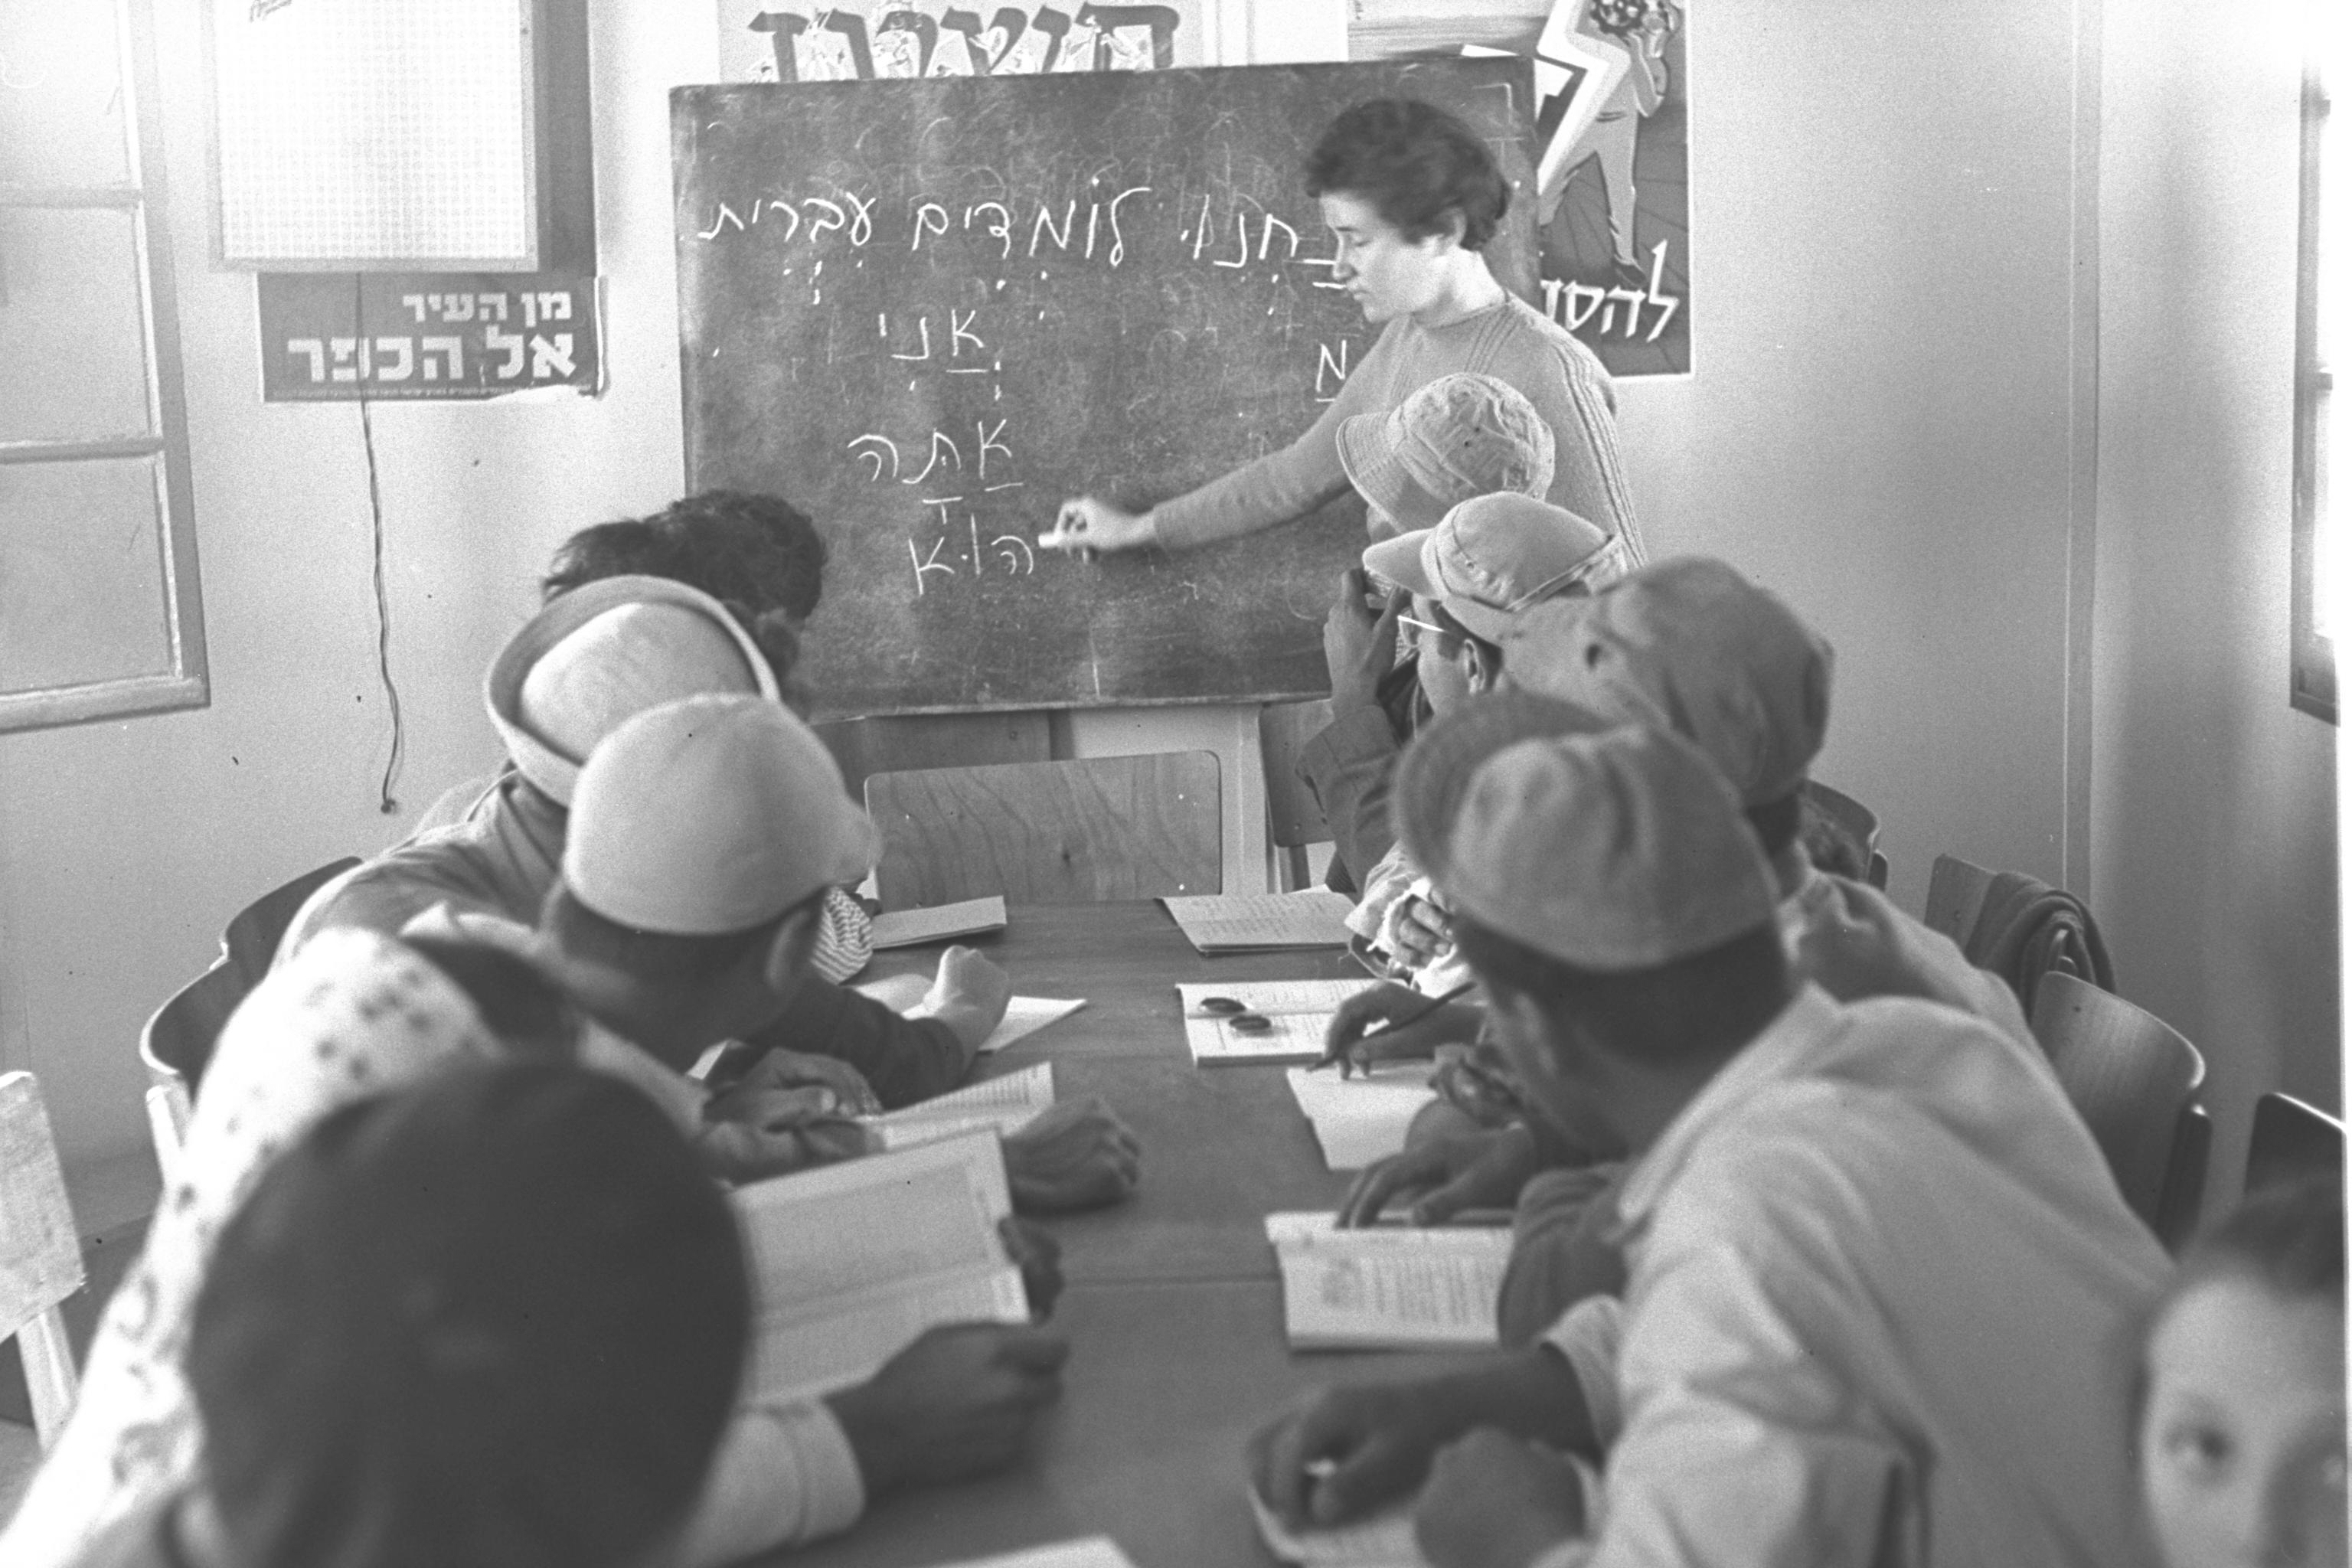 An after-work Hebrew lesson for new emigres in Dimona, 1955 (Photo/Moshe Pridan-National Photo Collection)